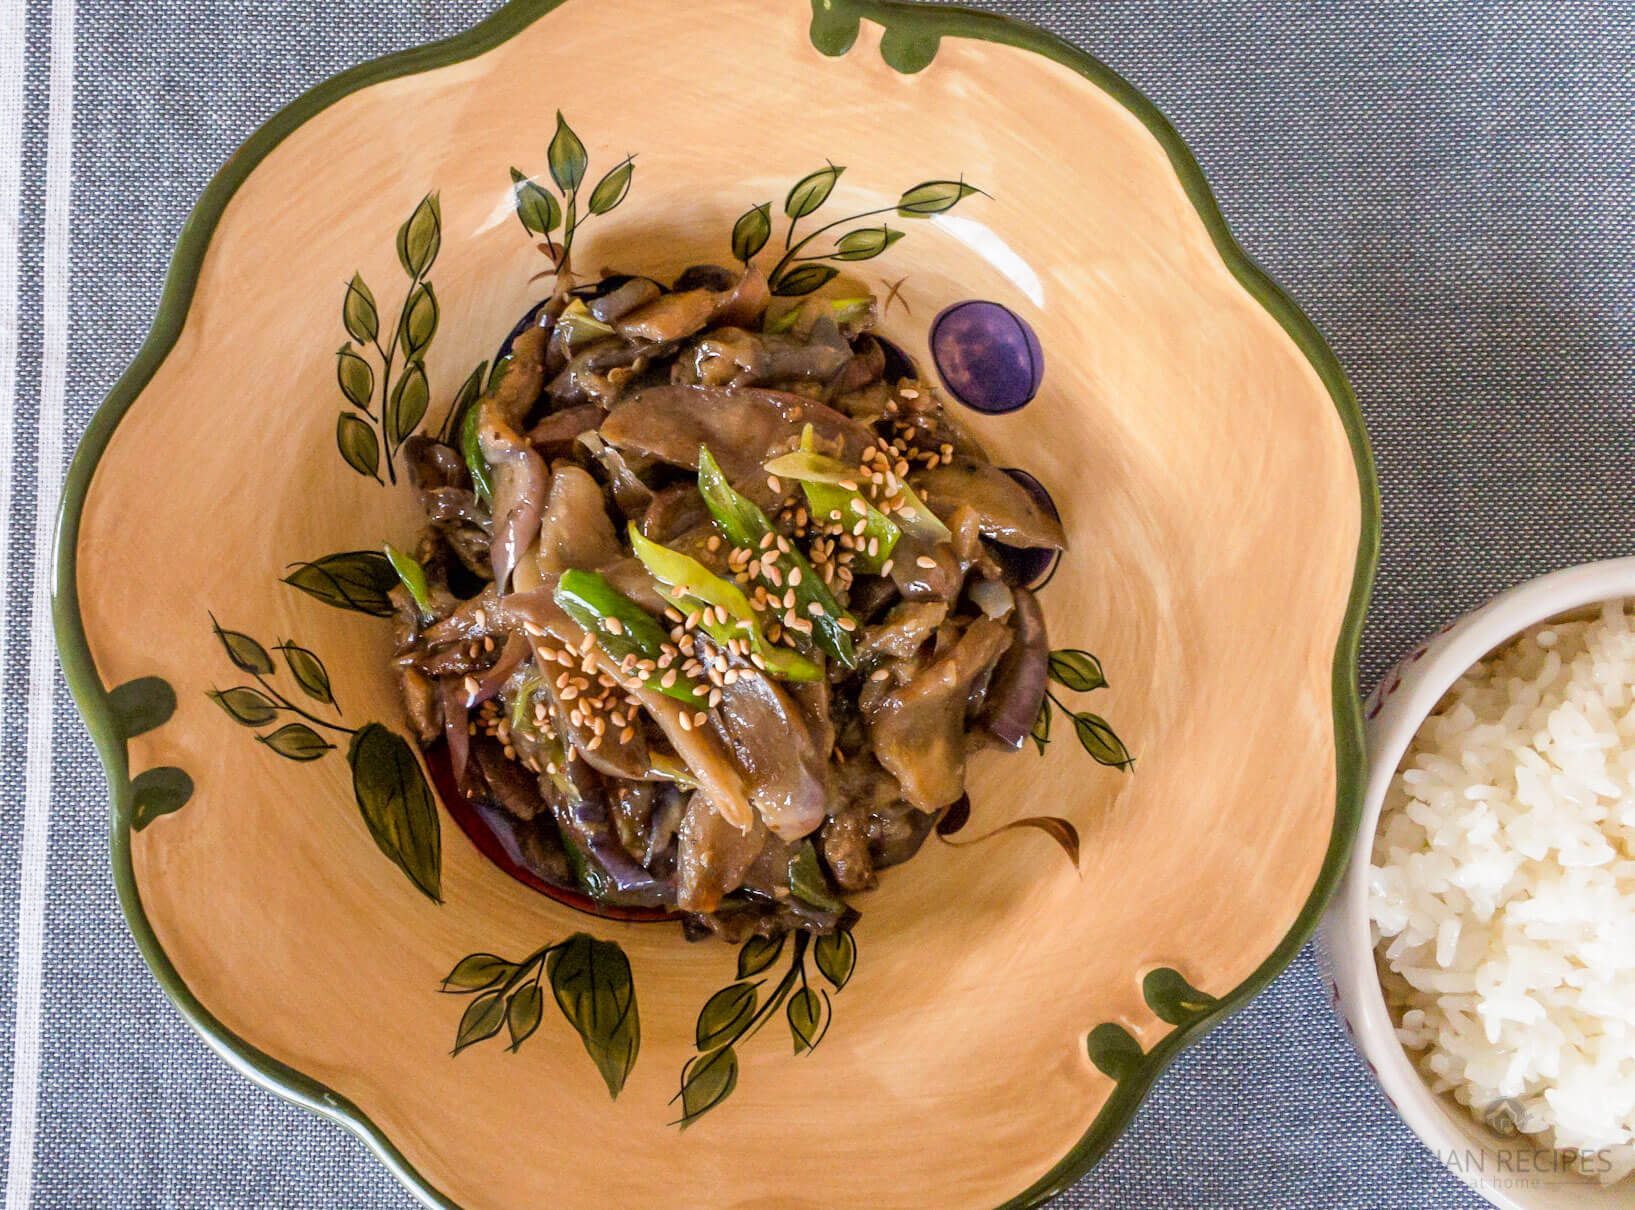 This Korean-style Stir-Fried Eggplant (Gaji Bokkeum) side dish is easy to make with simple seasonings.